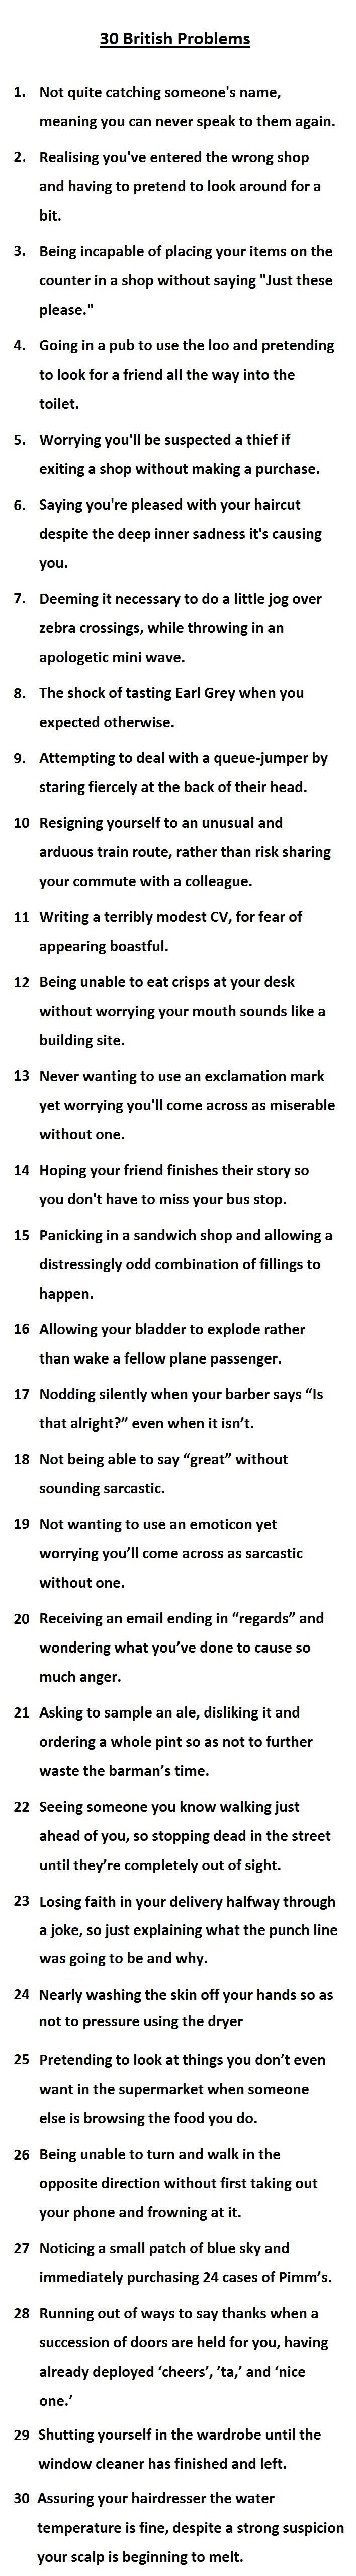 30 British Problems.  I thought this was just me - didn't realize until now it's a cultural thing lol! What a relief - I'm not completely mad - just normal by British standards!